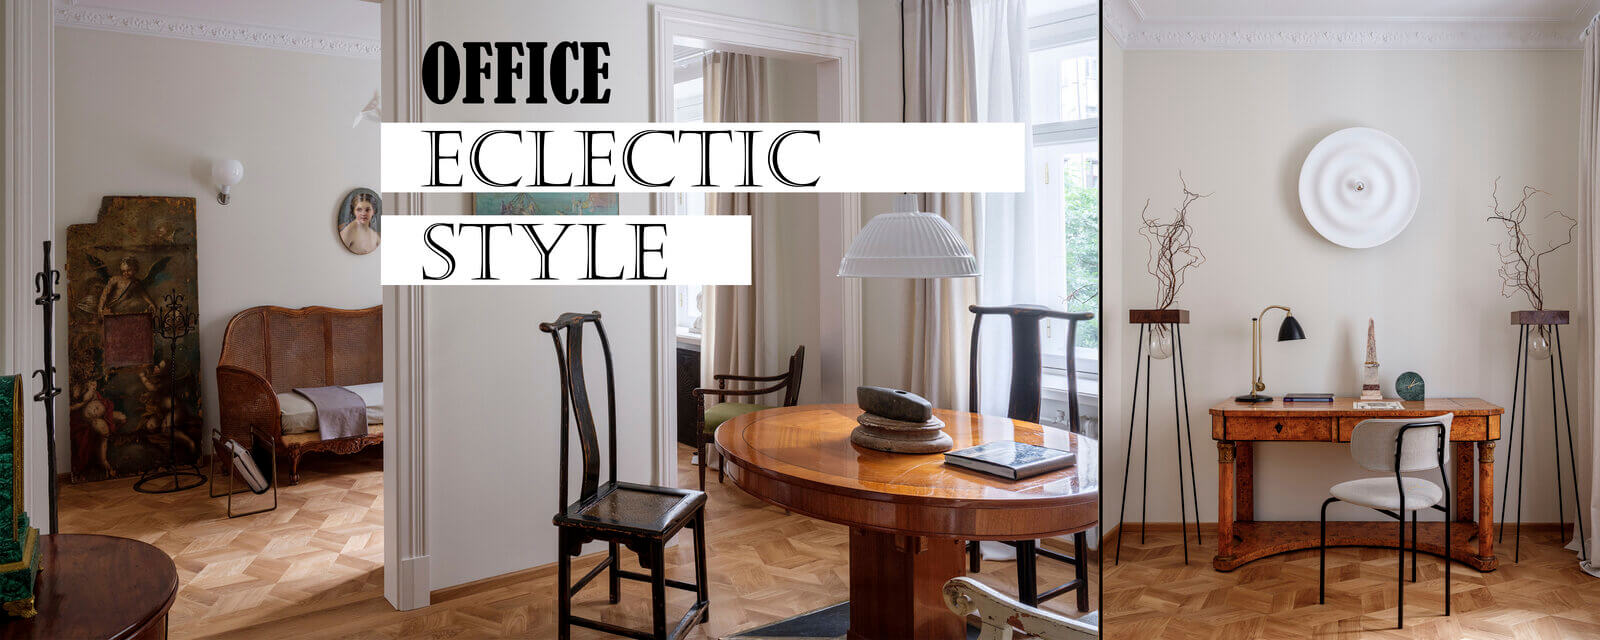 Eclectic Style | Office